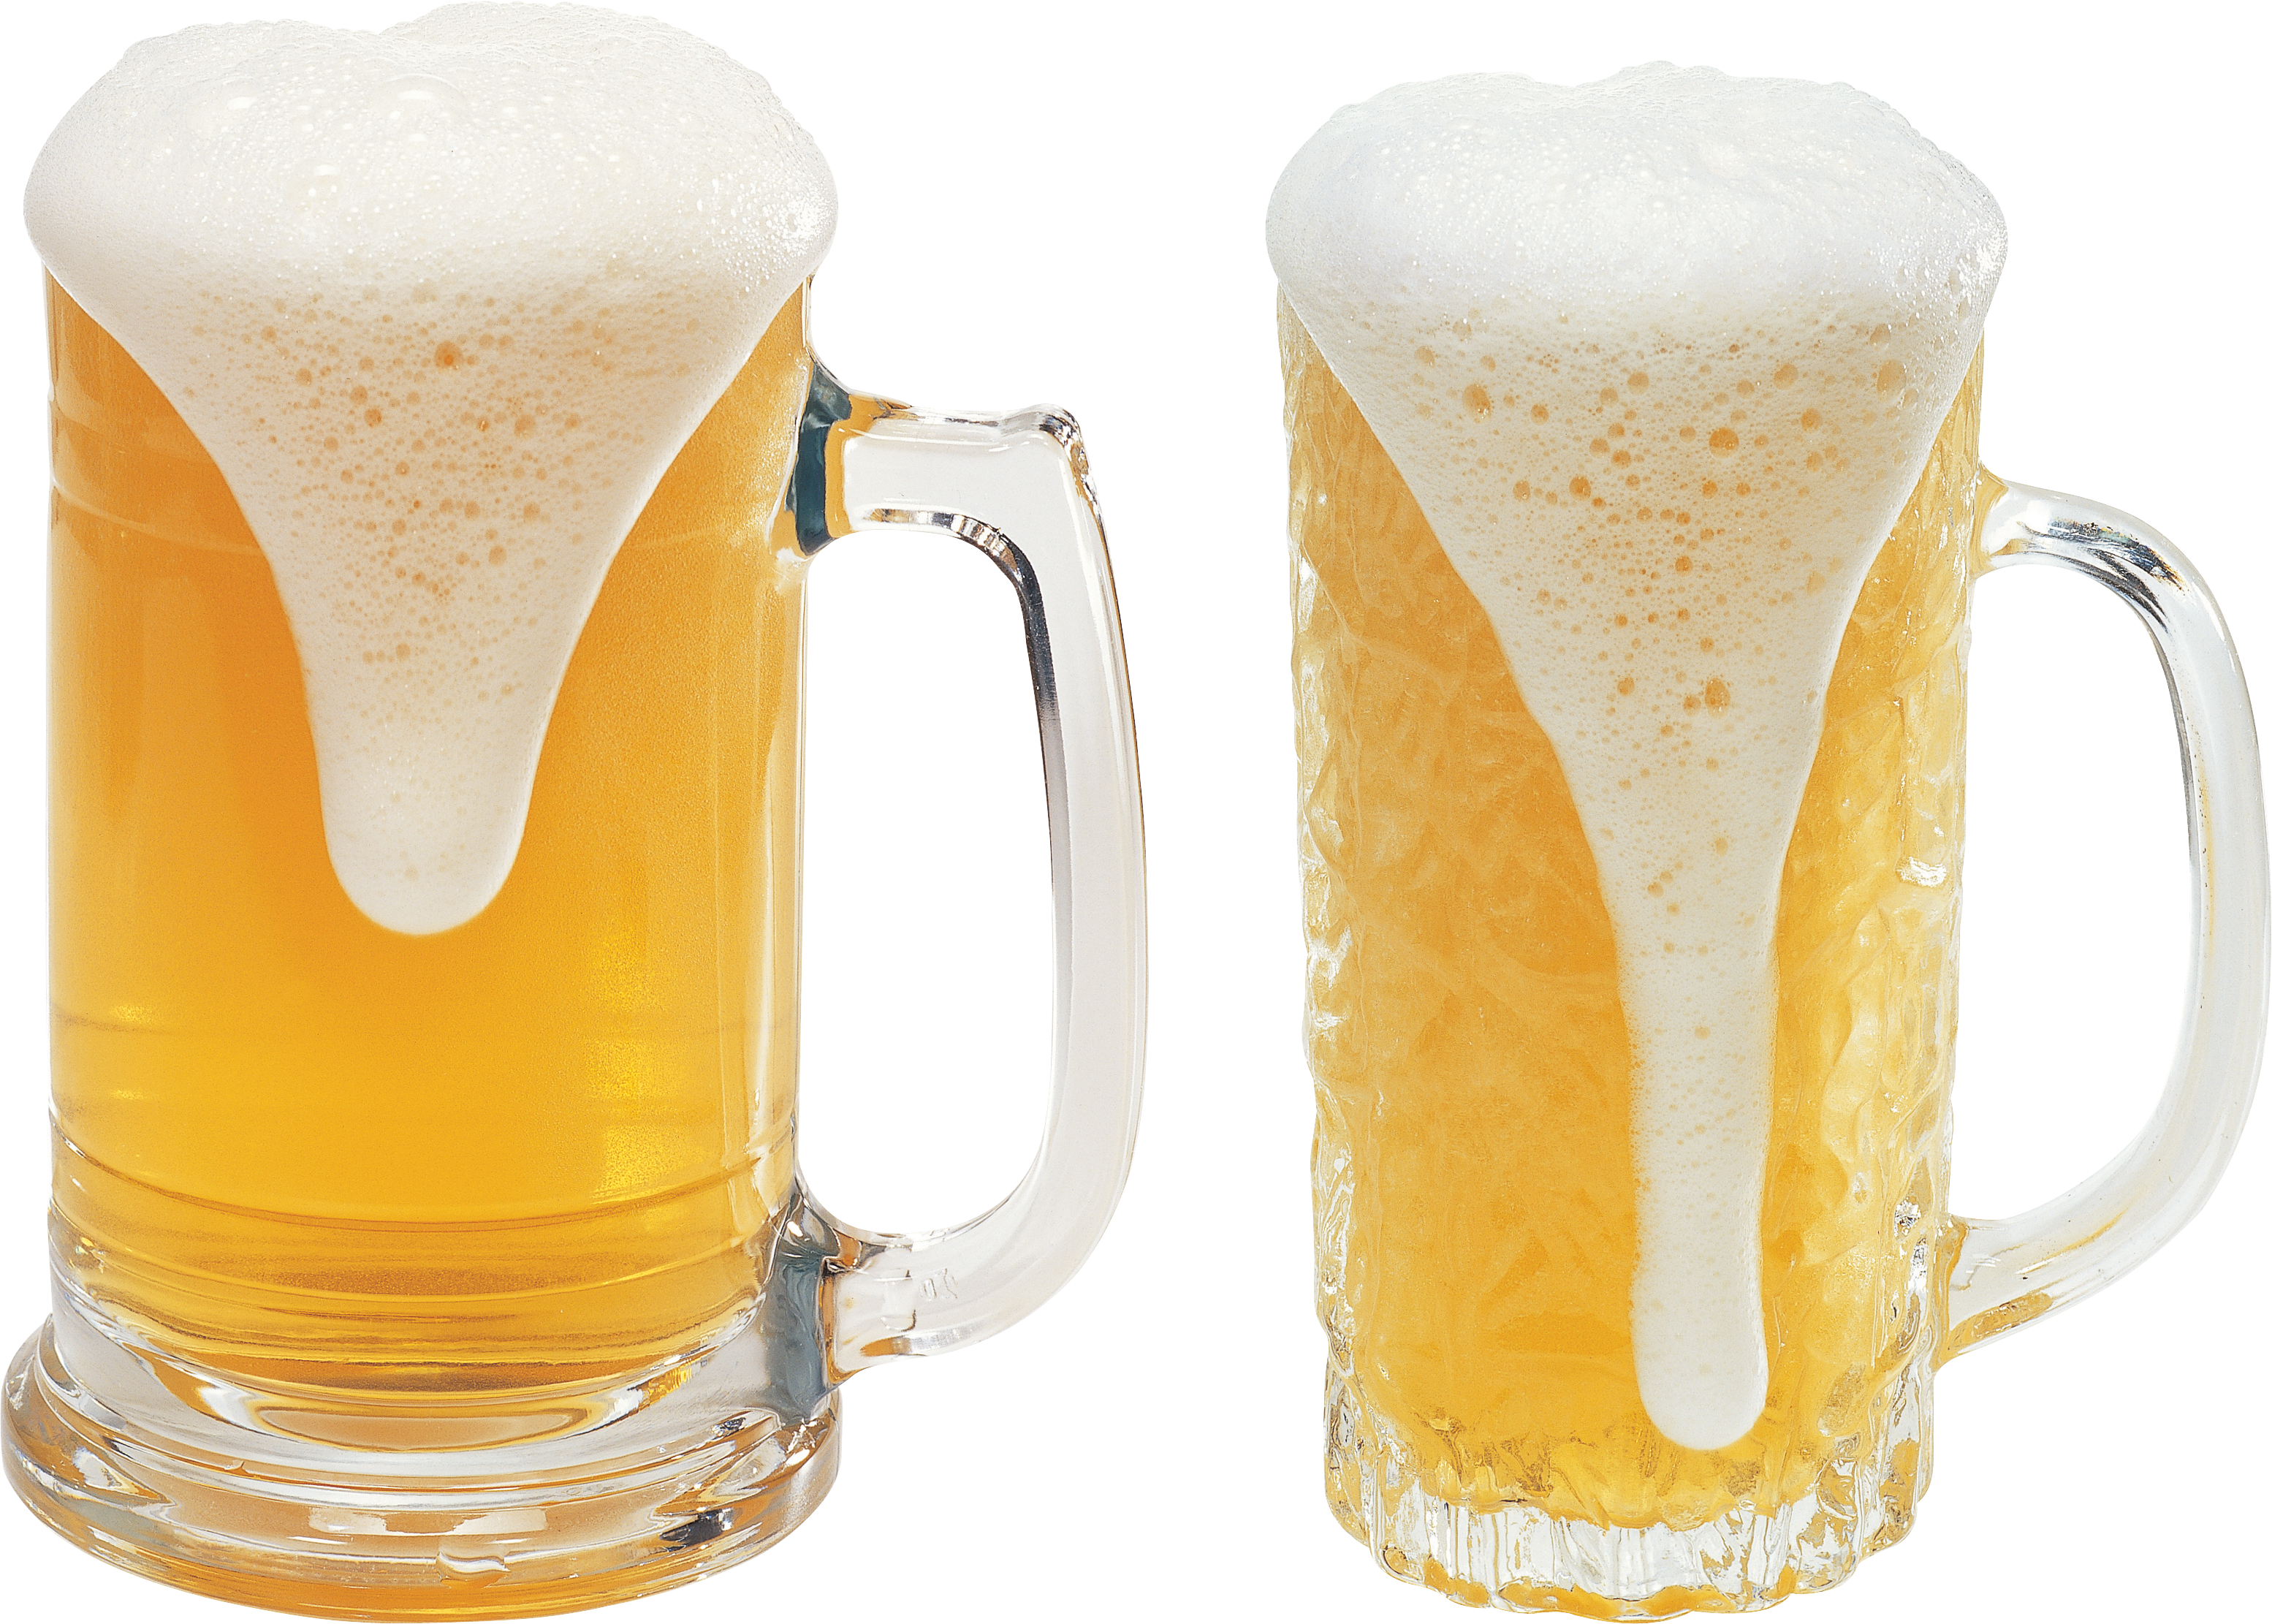 Two glasses of three. Transparent beer jug clipart